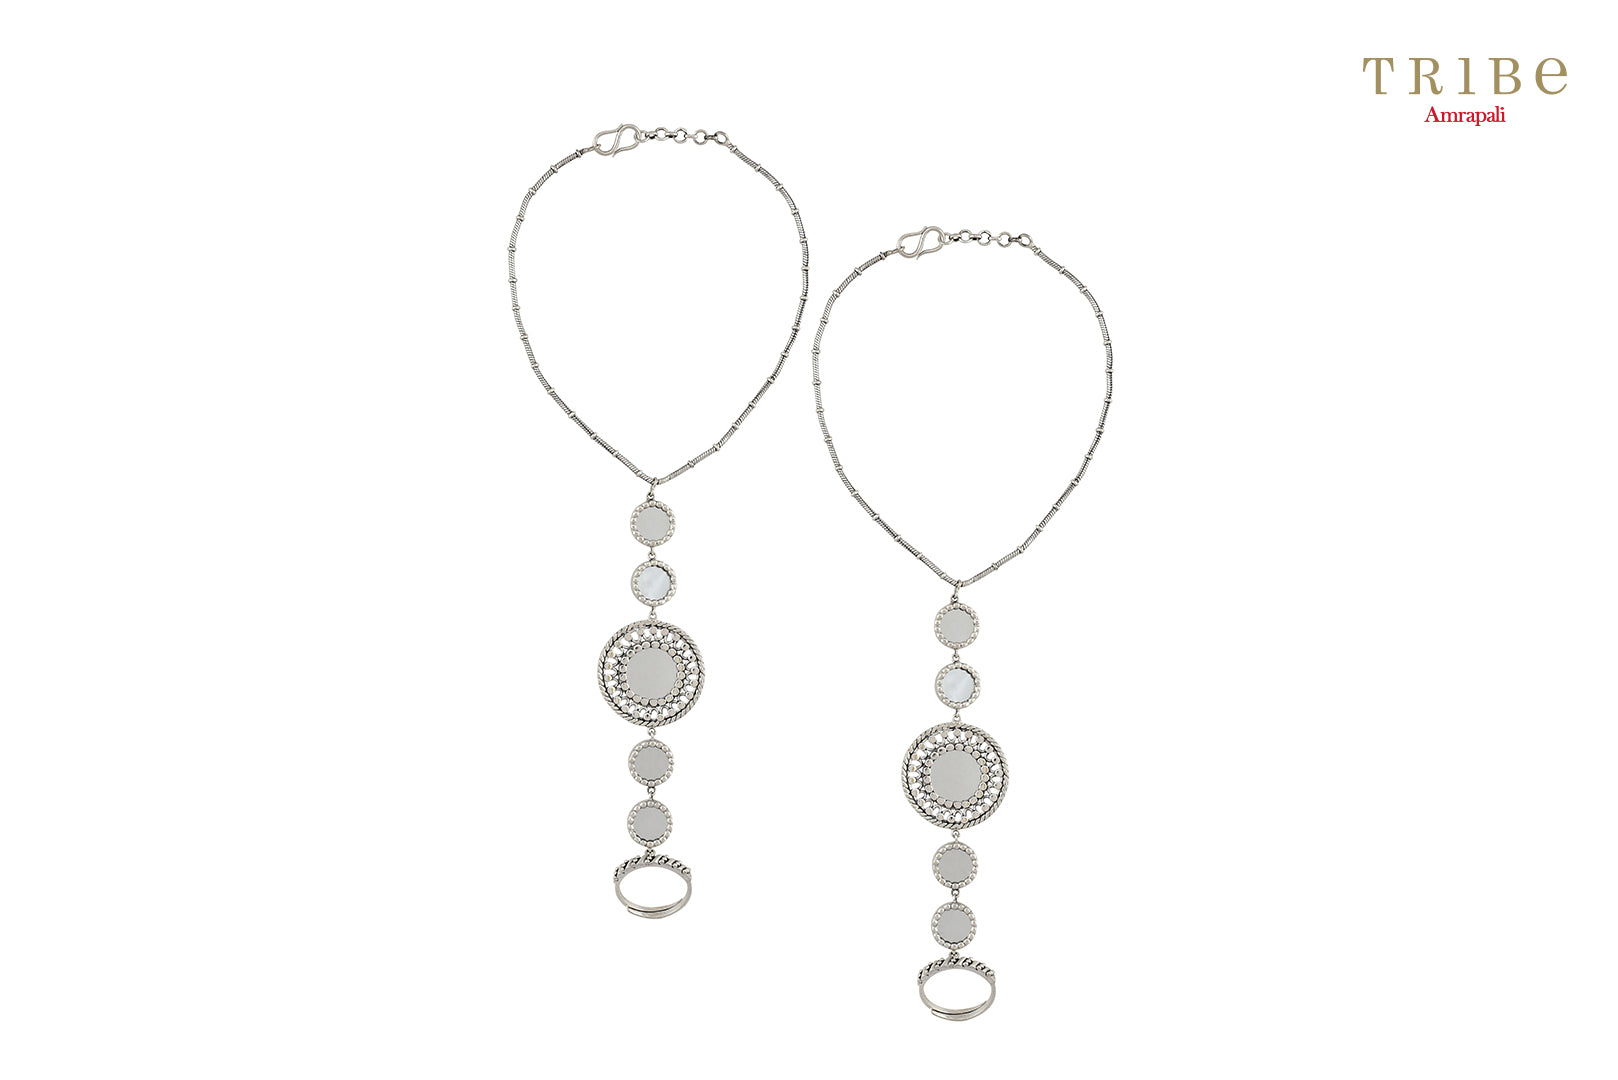 Buy Amrapali multi-round mirror silver anklet online in USA. Add a sparkling touch to your ethnic look with beautiful Indian silver jewelry available at Pure Elegance exclusive Indian fashion store in USA or shop online.-full view